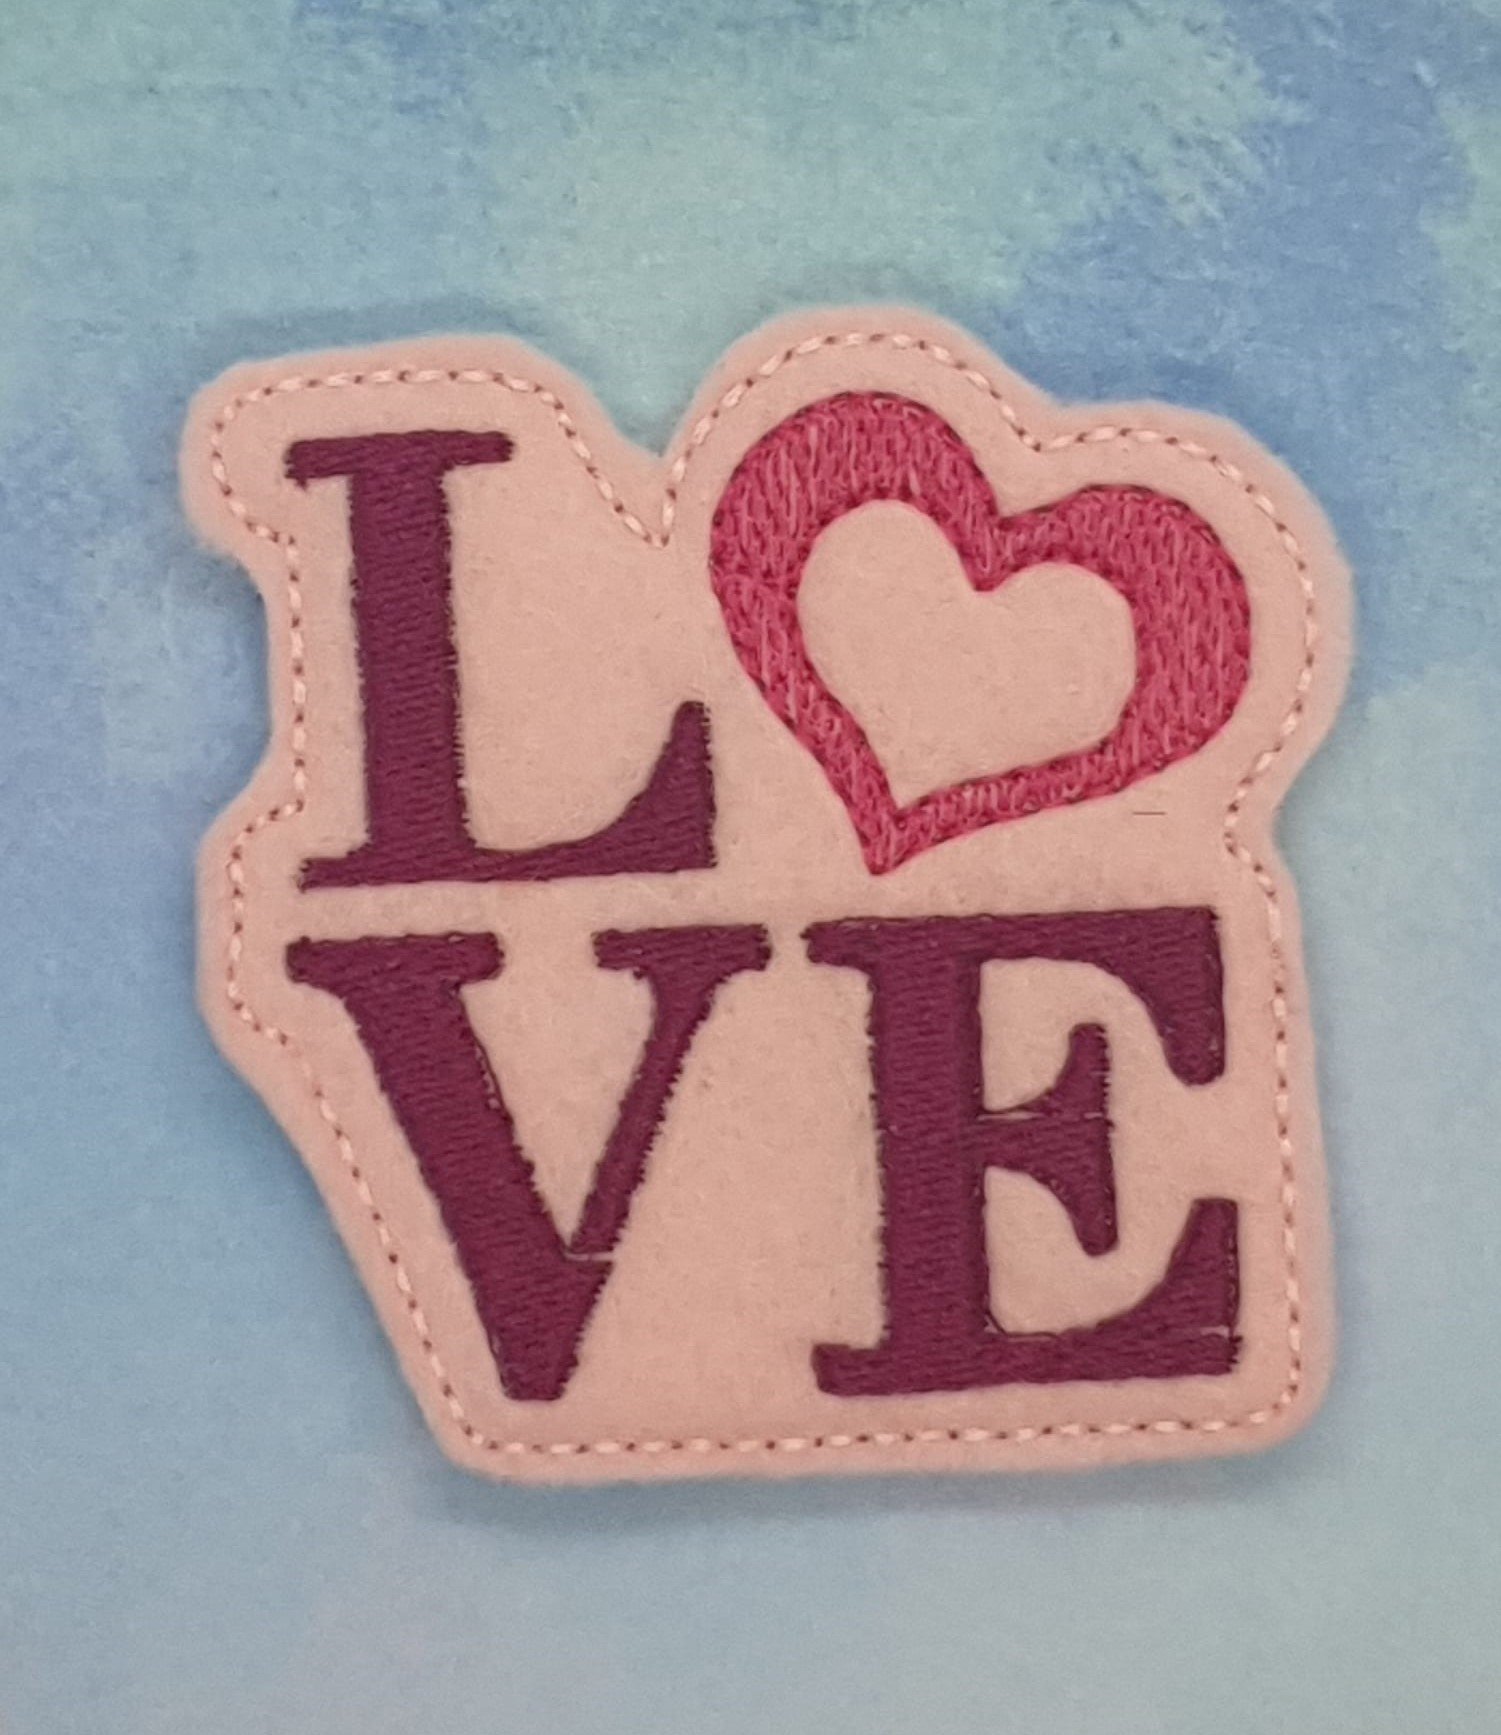 LOVE with heart Feltie Embroidery Design